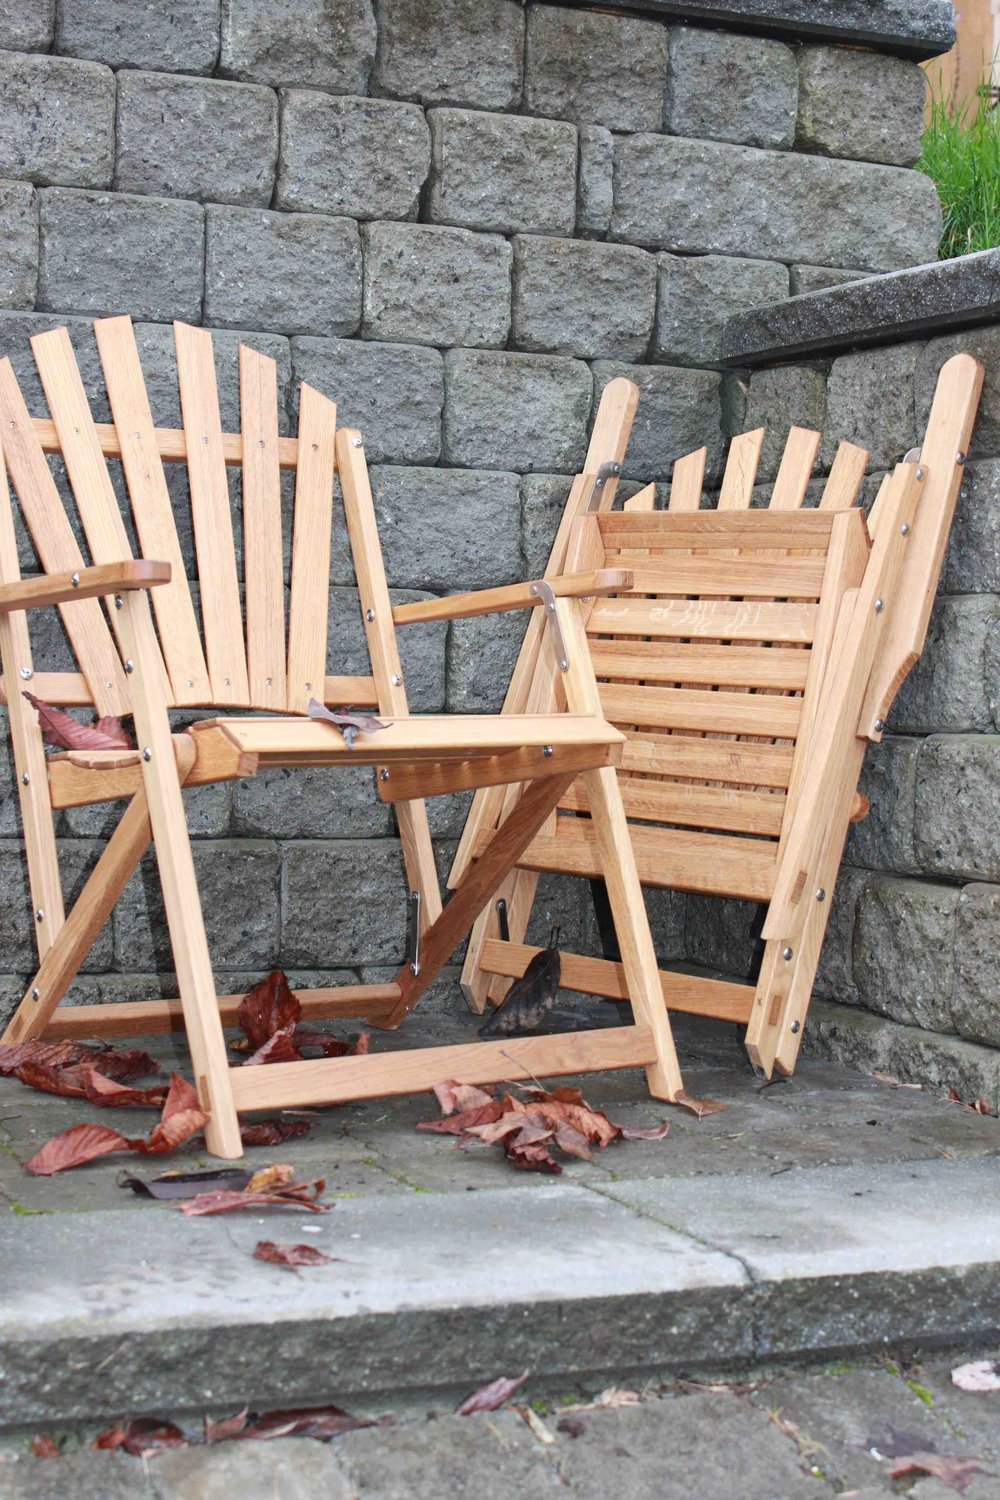 Oak Folding Chairs.one folded.jpg